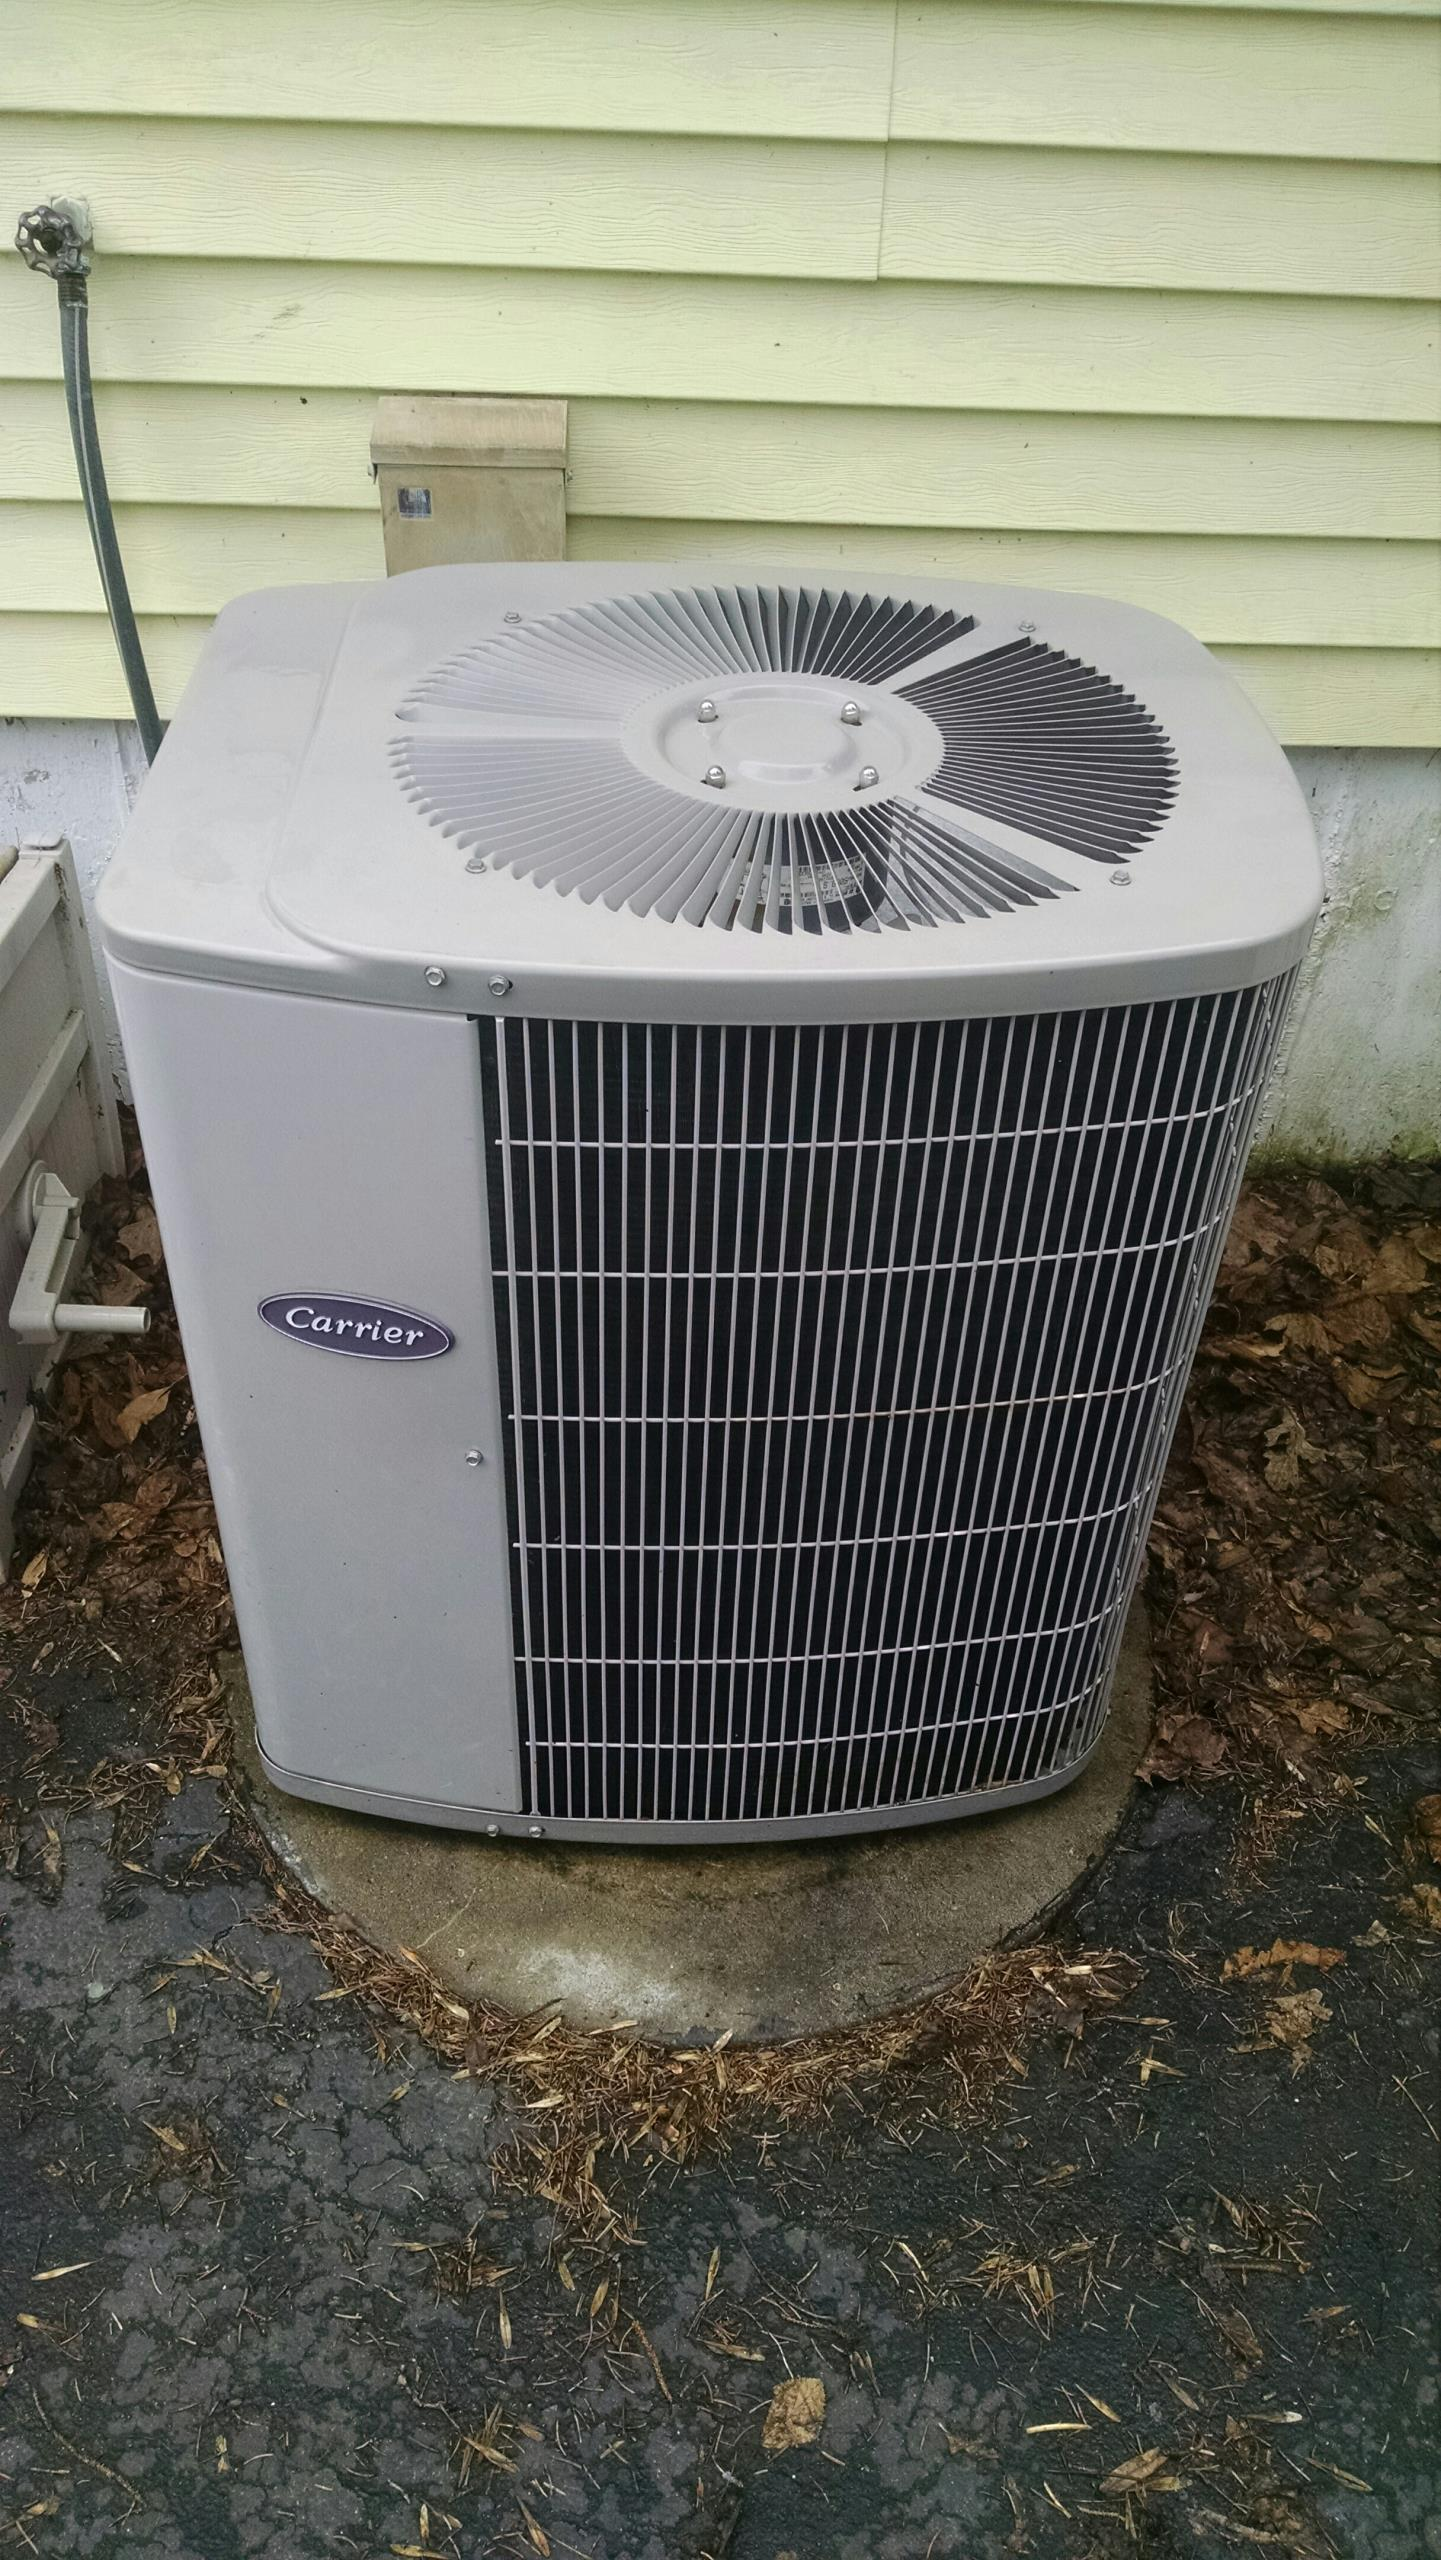 Furnace And Air Conditioning Repair In Watertown Wi Have A Trane Xv90 With Ac Trying To Install Honeywell Tune Up Cleaning On Carrier C